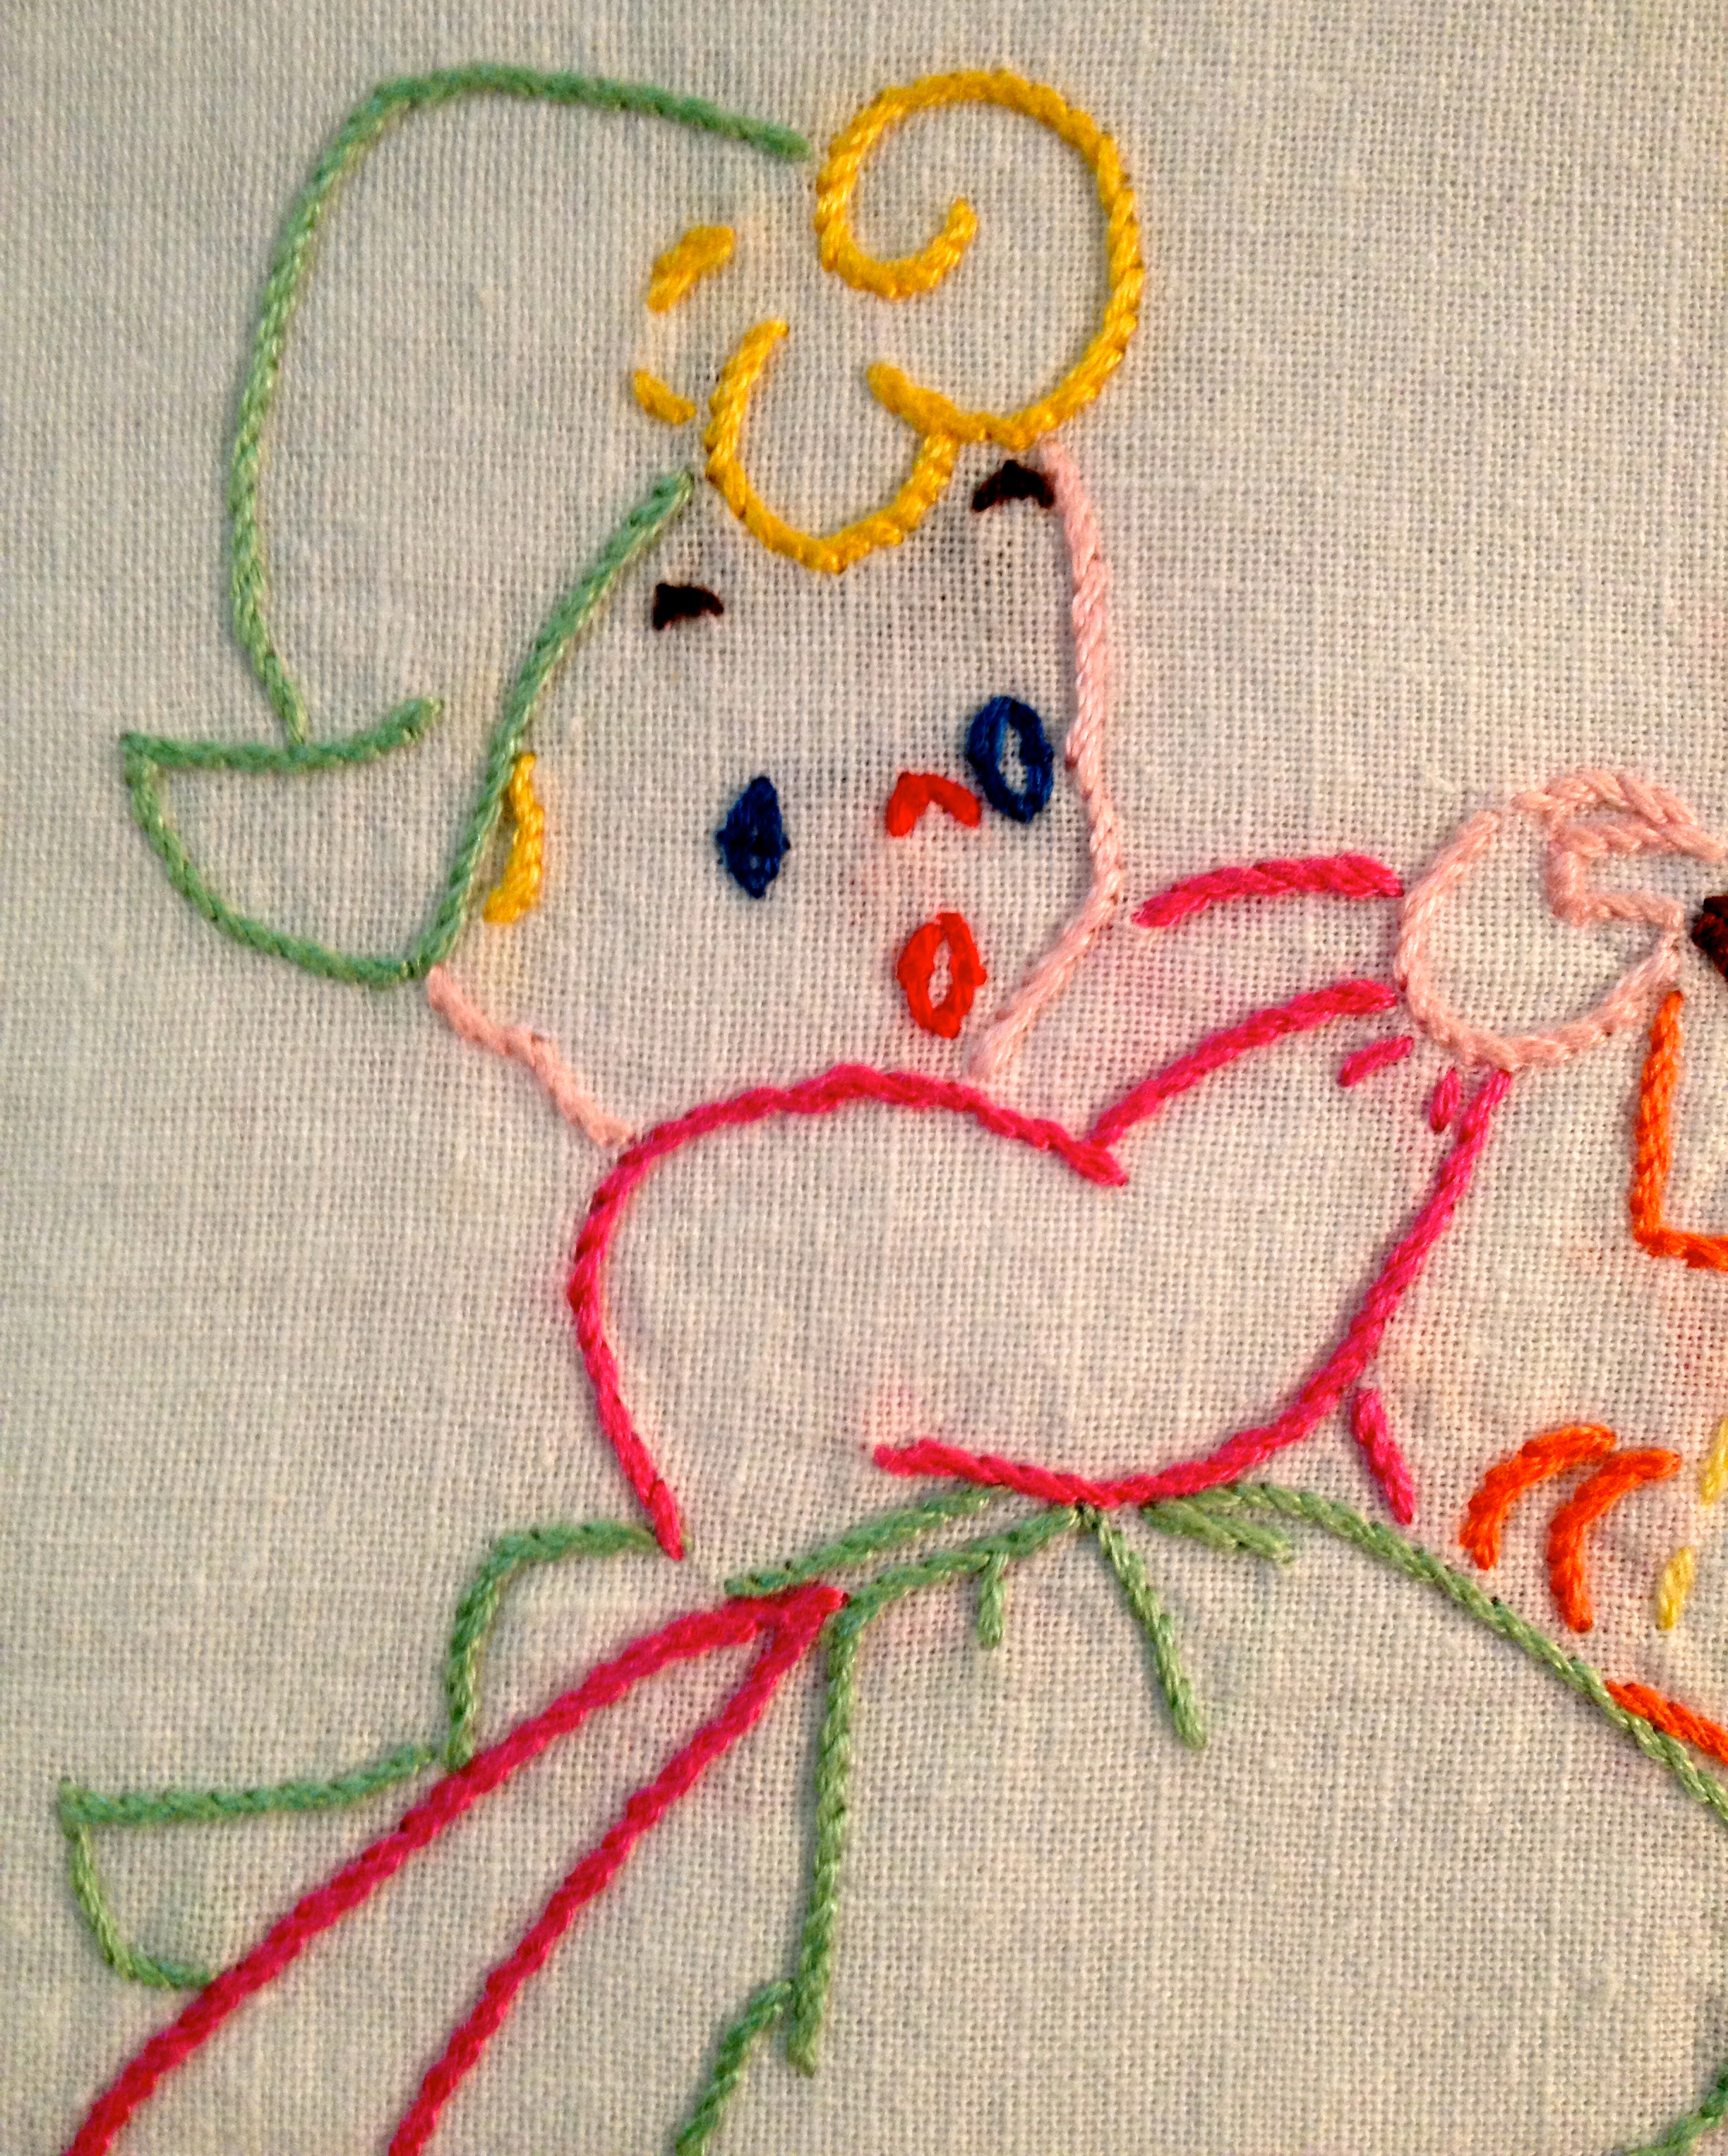 Simple Embroidery Its Just Ducky For Beginners Dish Sisters